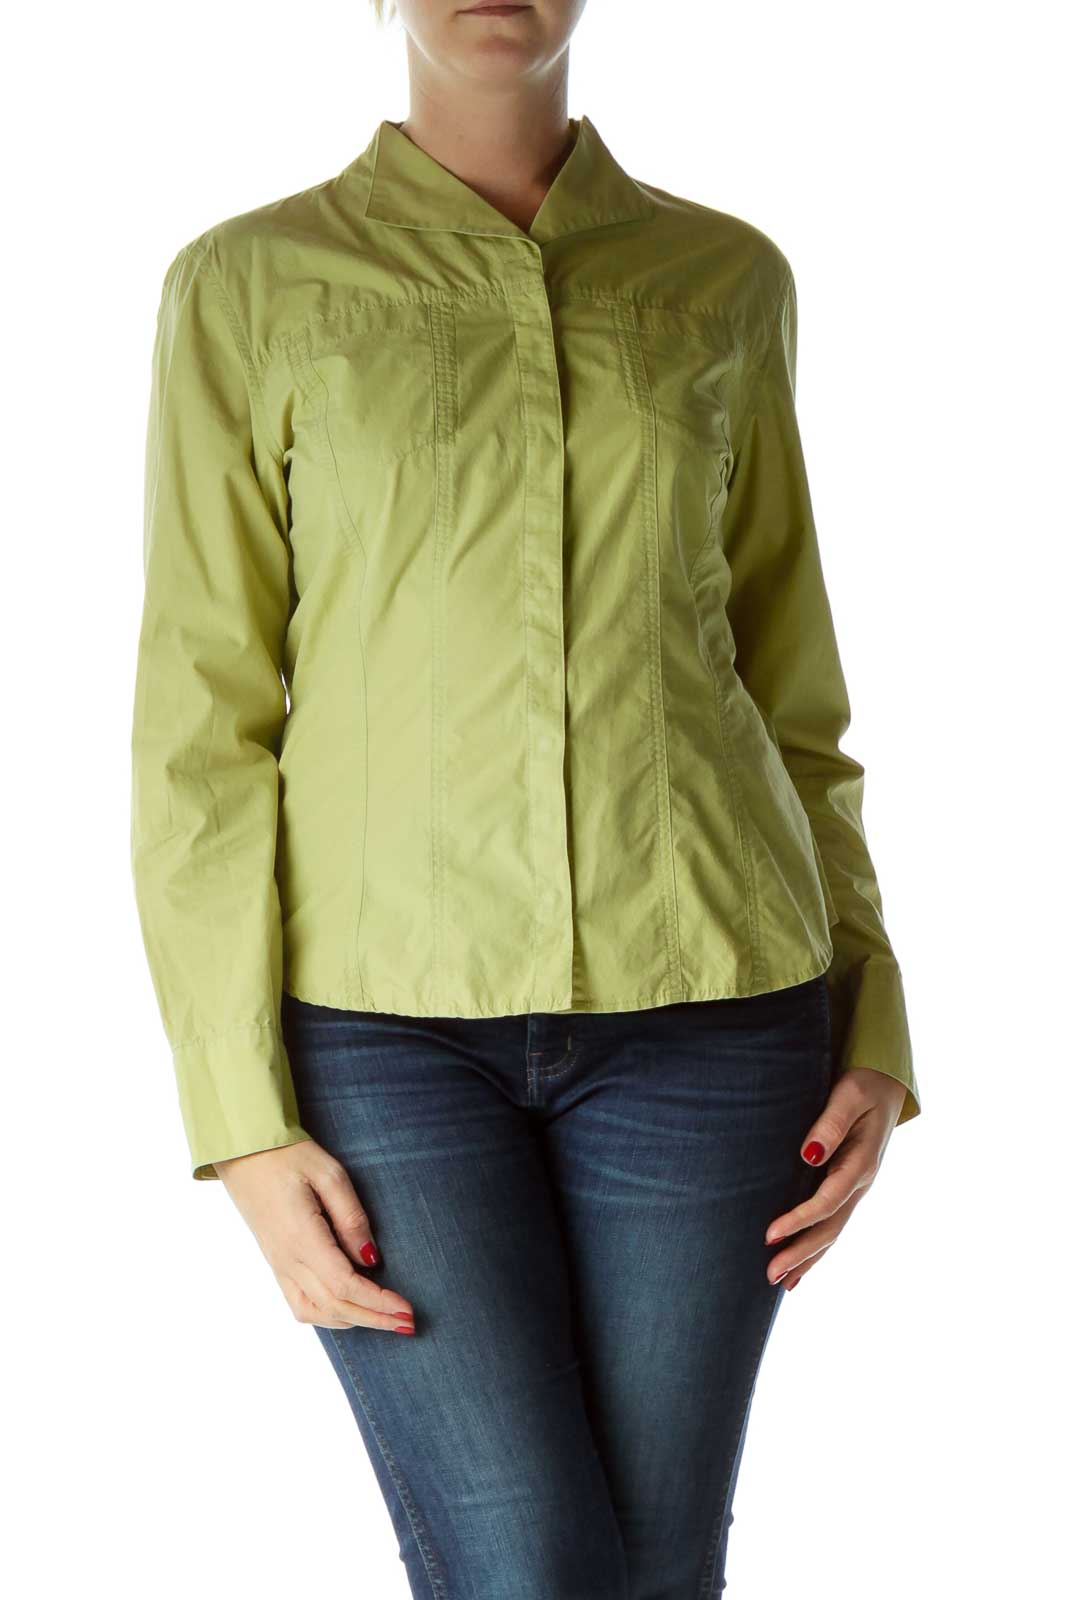 Green Cotton Shirt with Snaps